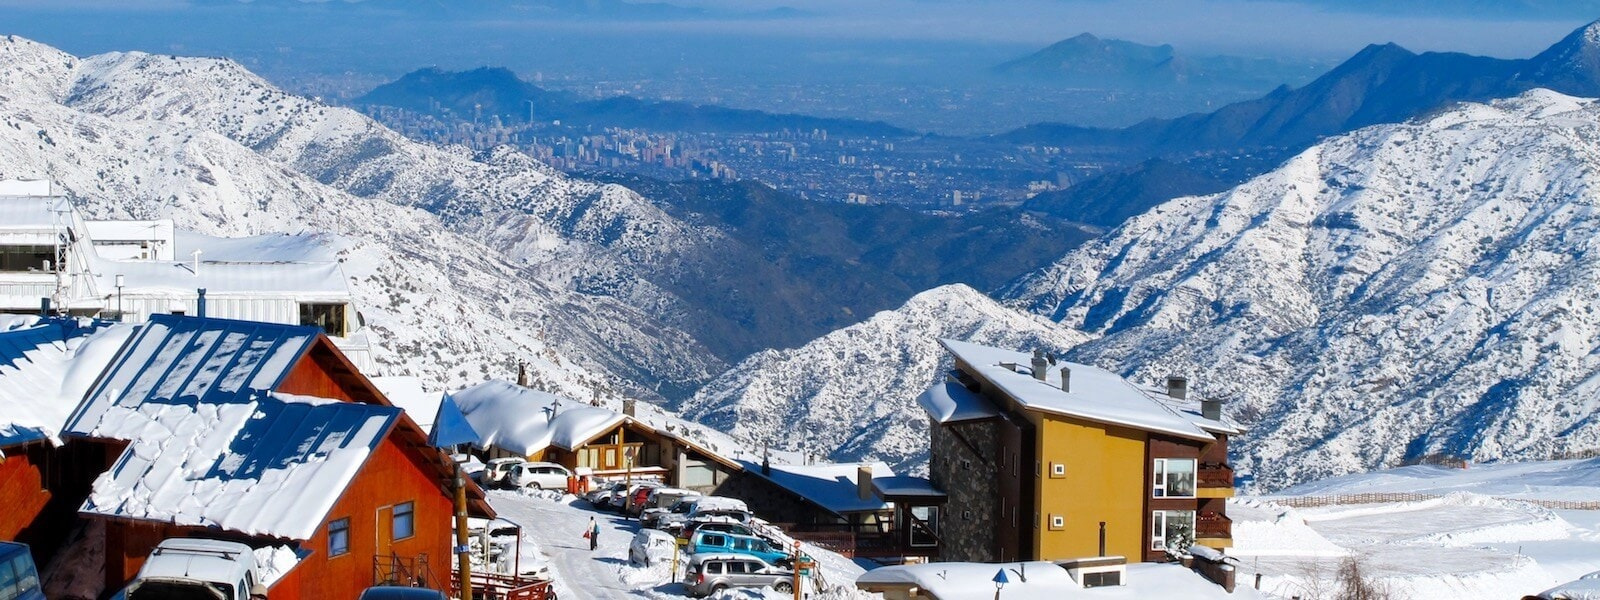 Skiing In Chile 2021 S Ultimate Ski Resort Backcountry Guide